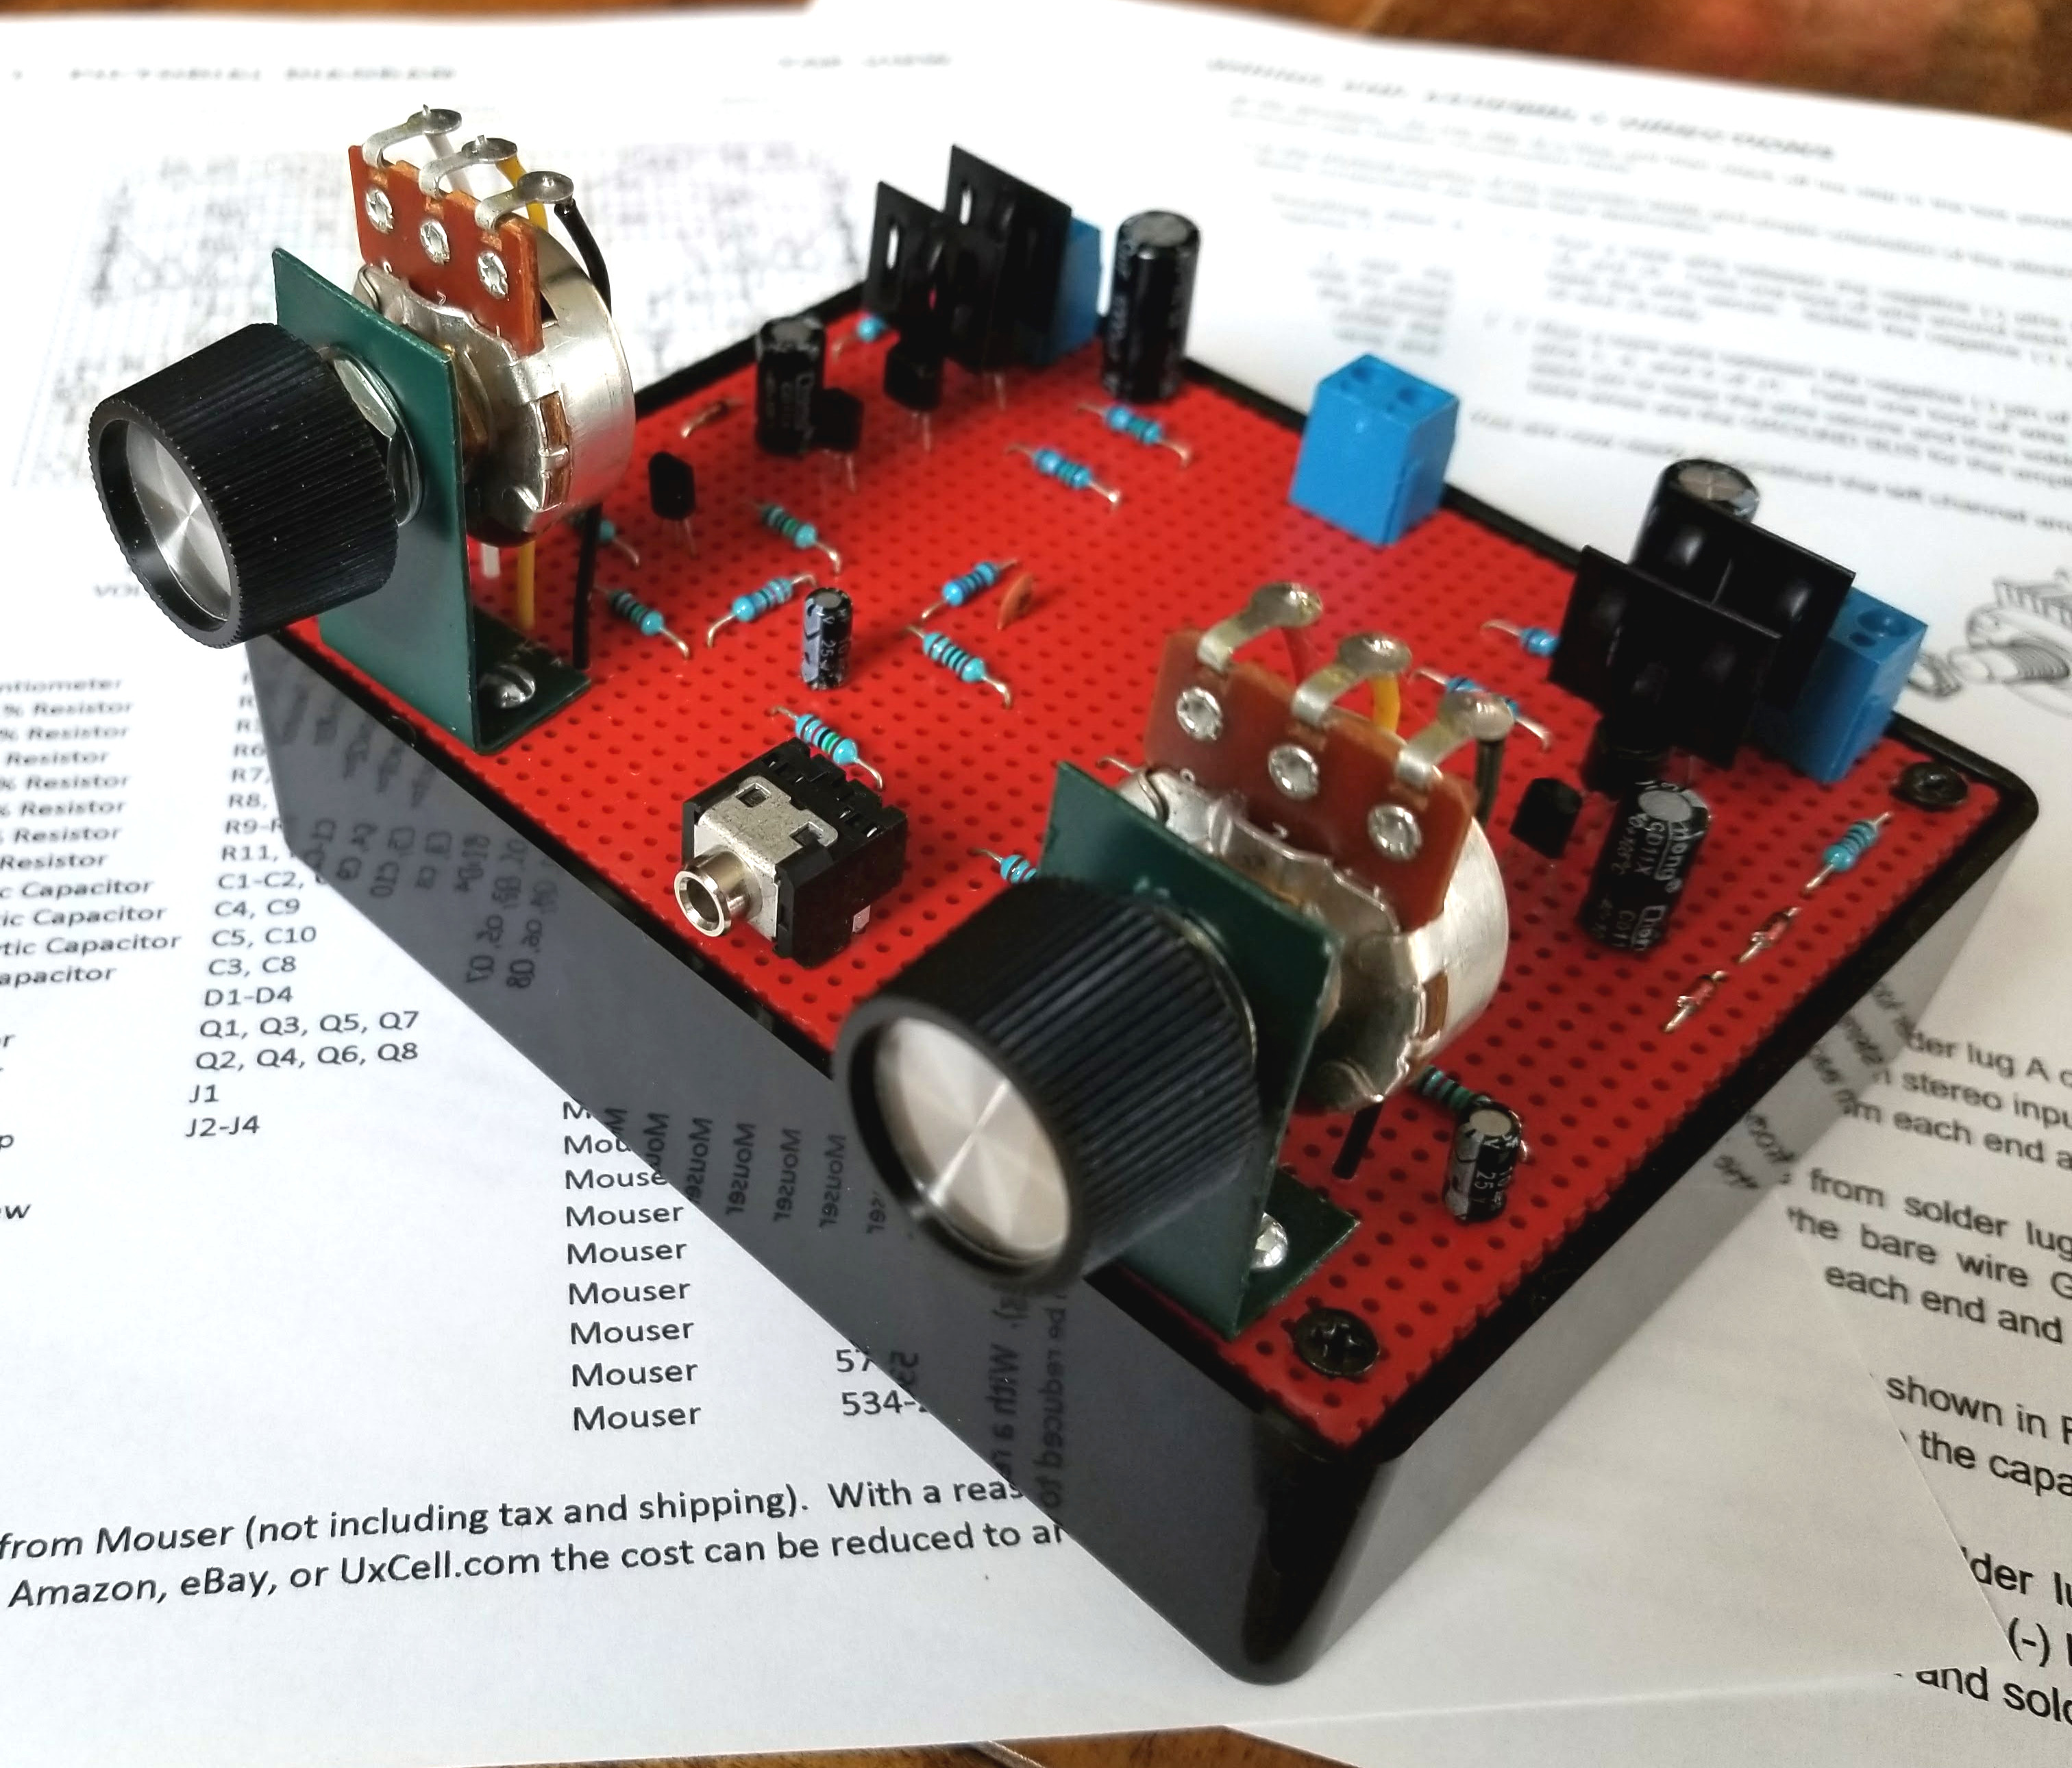 Build This 8 Transistor Stereo Amplifier Ideas Circuit Of Small Amplifiers The Assembly Manual Covers Setup And Operation Along With Some Modifications You Can Make To Double Output Power If Desired